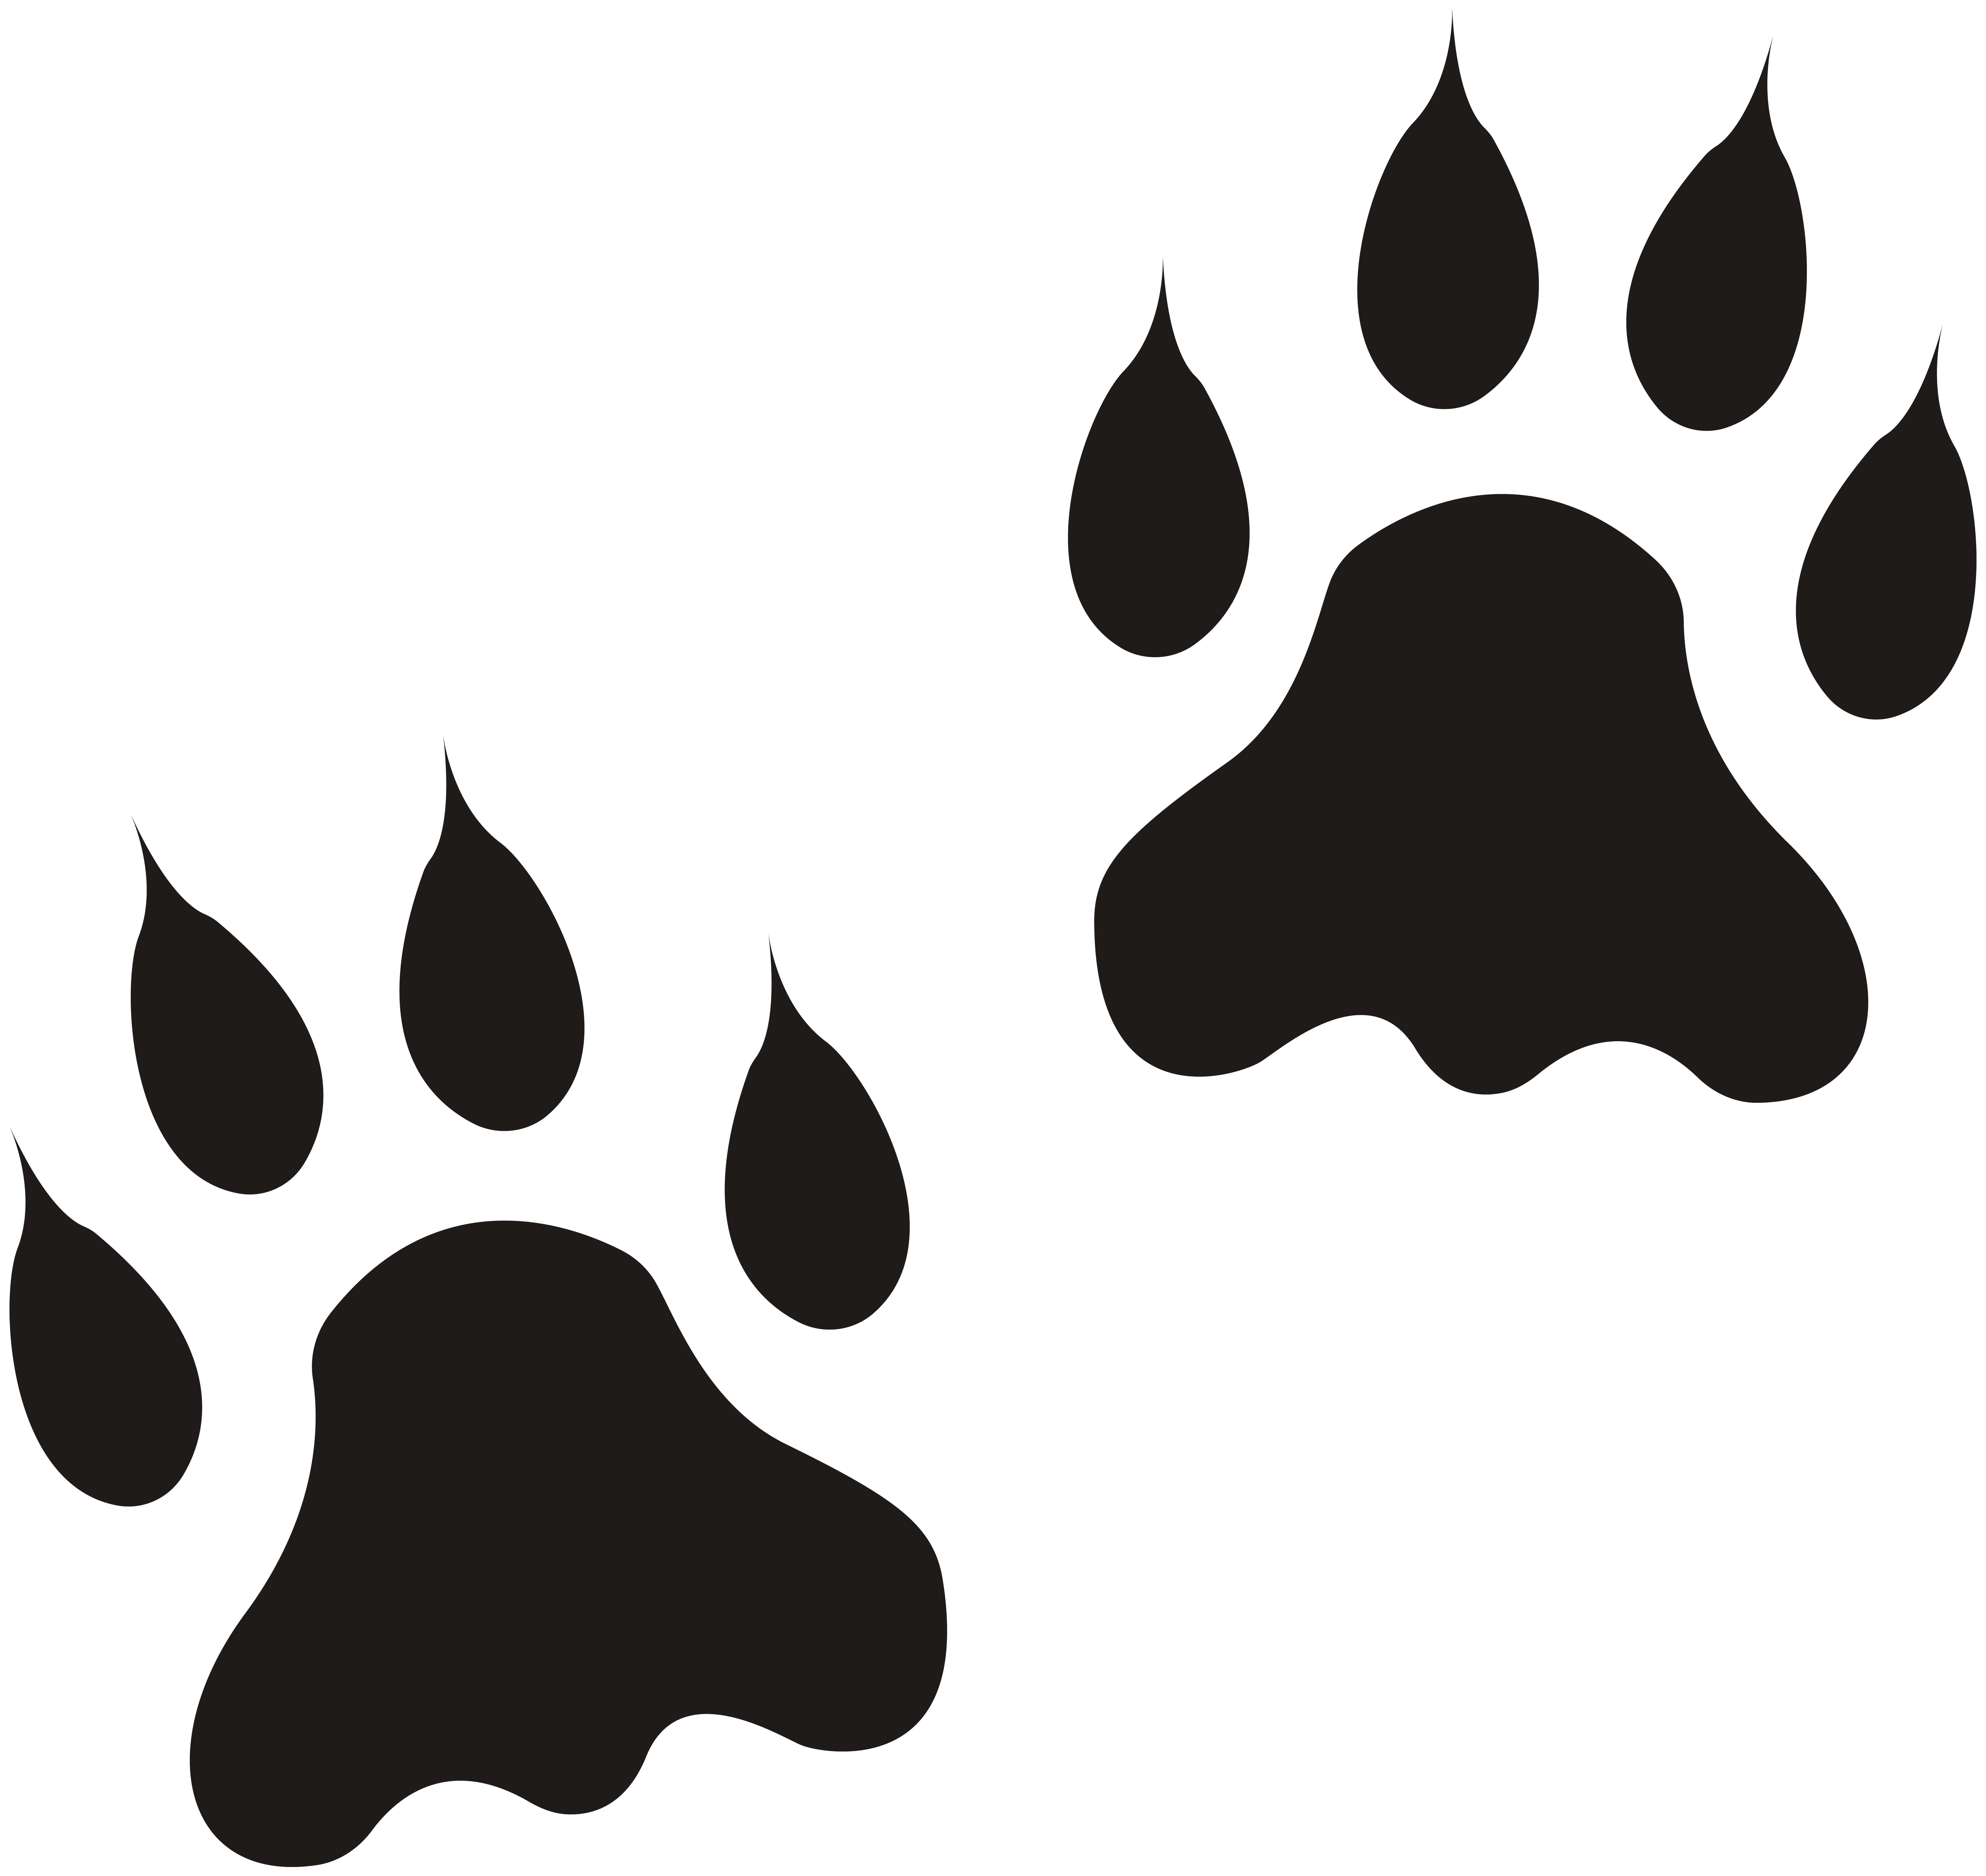 Lion paw clipart jpg black and white download Lion Paws Clip Art Image   Gallery Yopriceville - High ... jpg black and white download